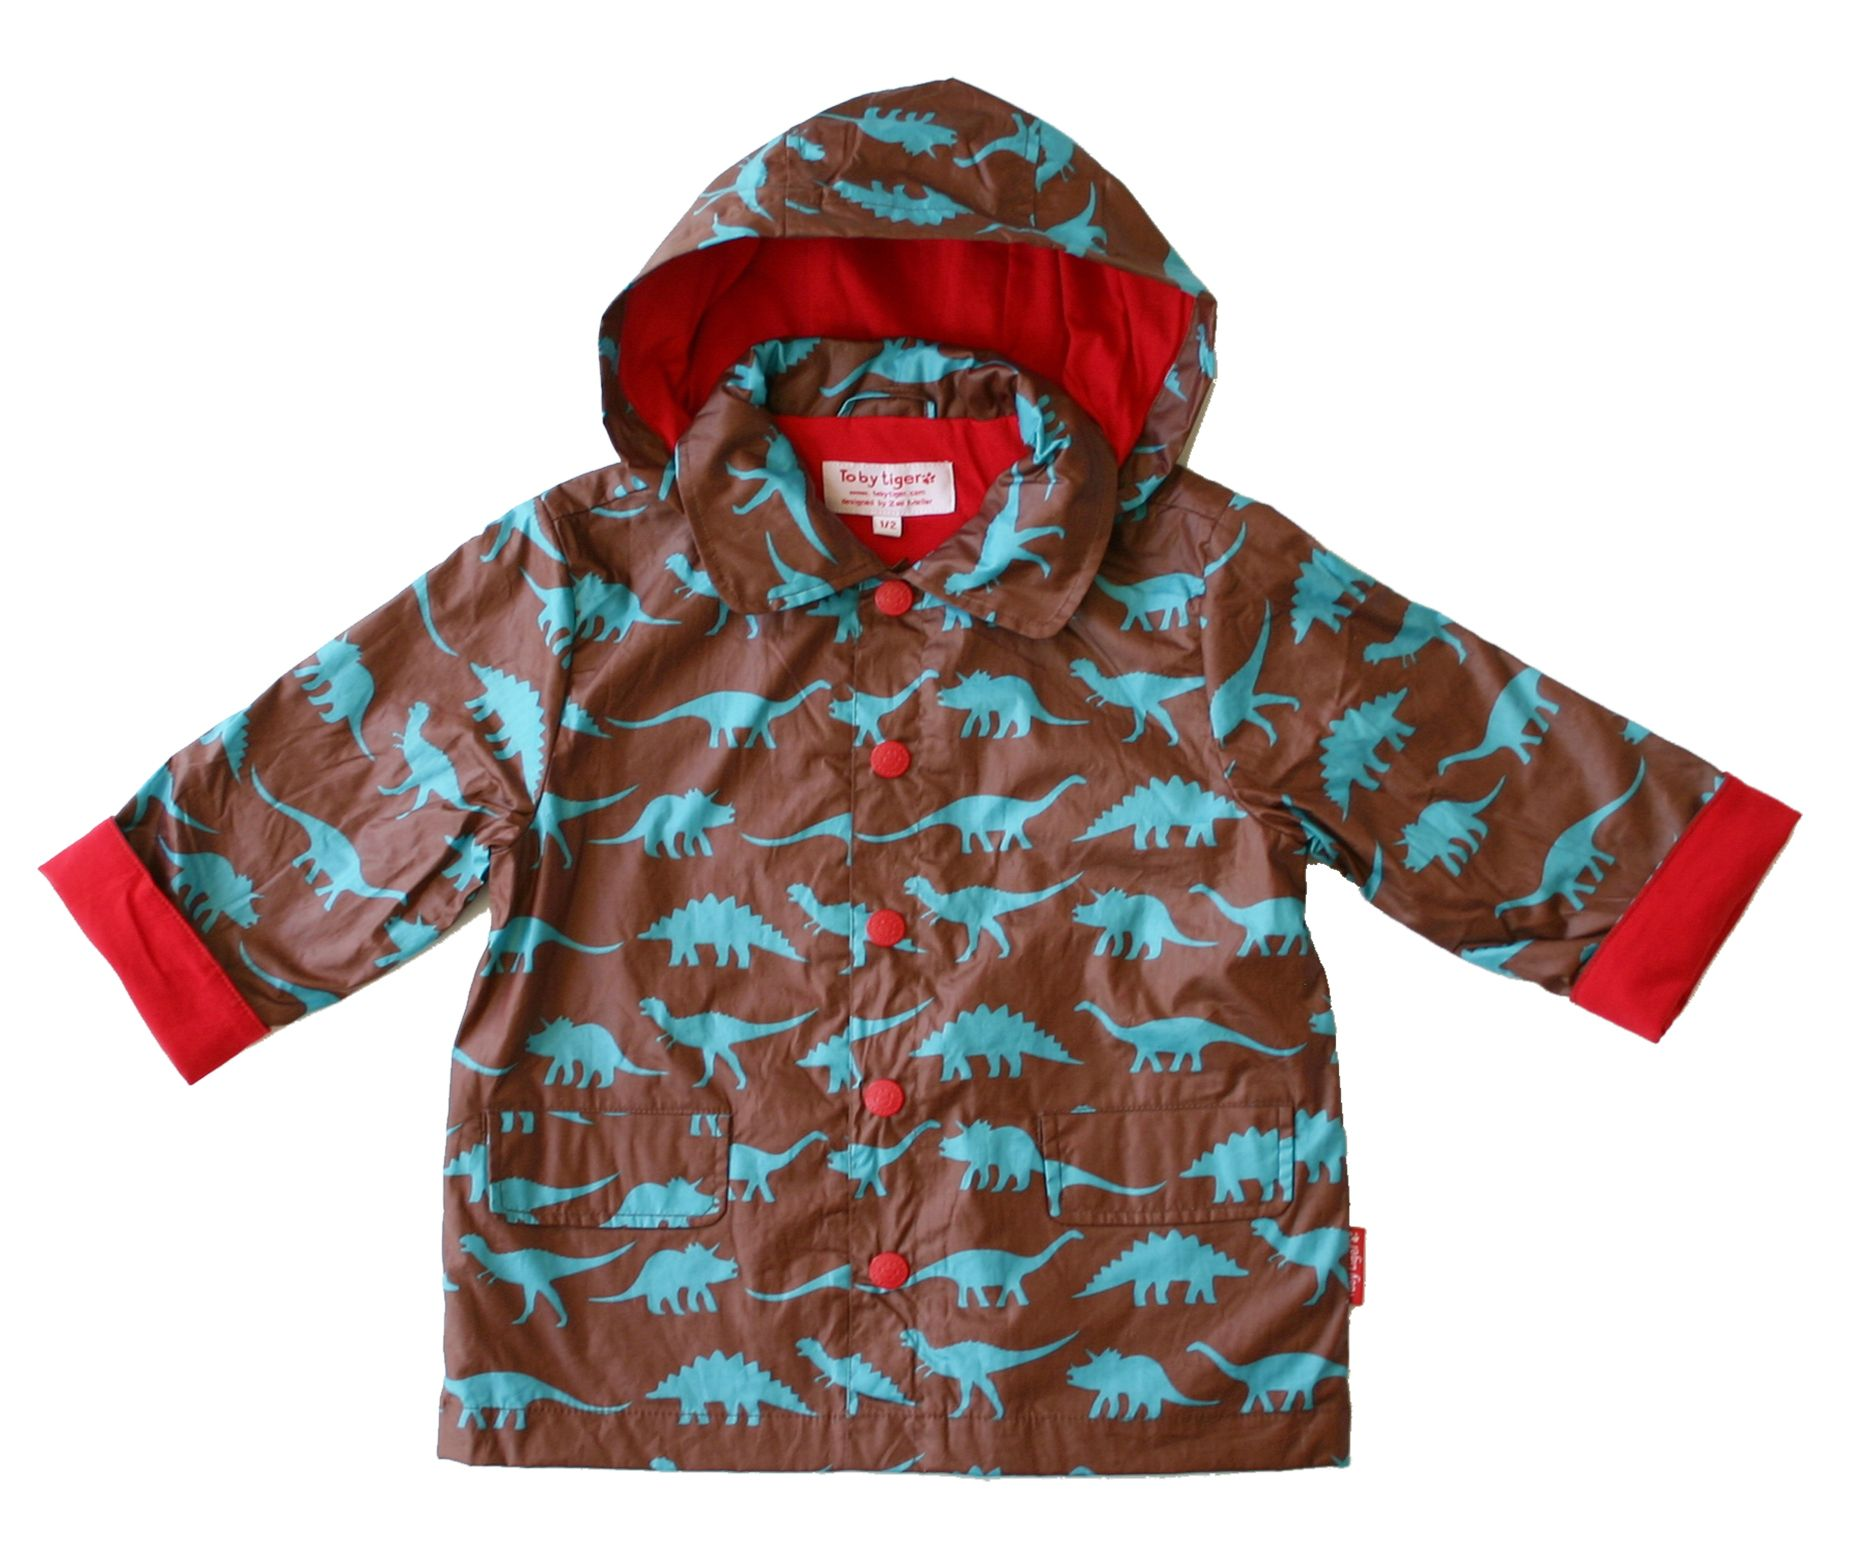 Toby Tiger Boys hooded raincoat, Brown